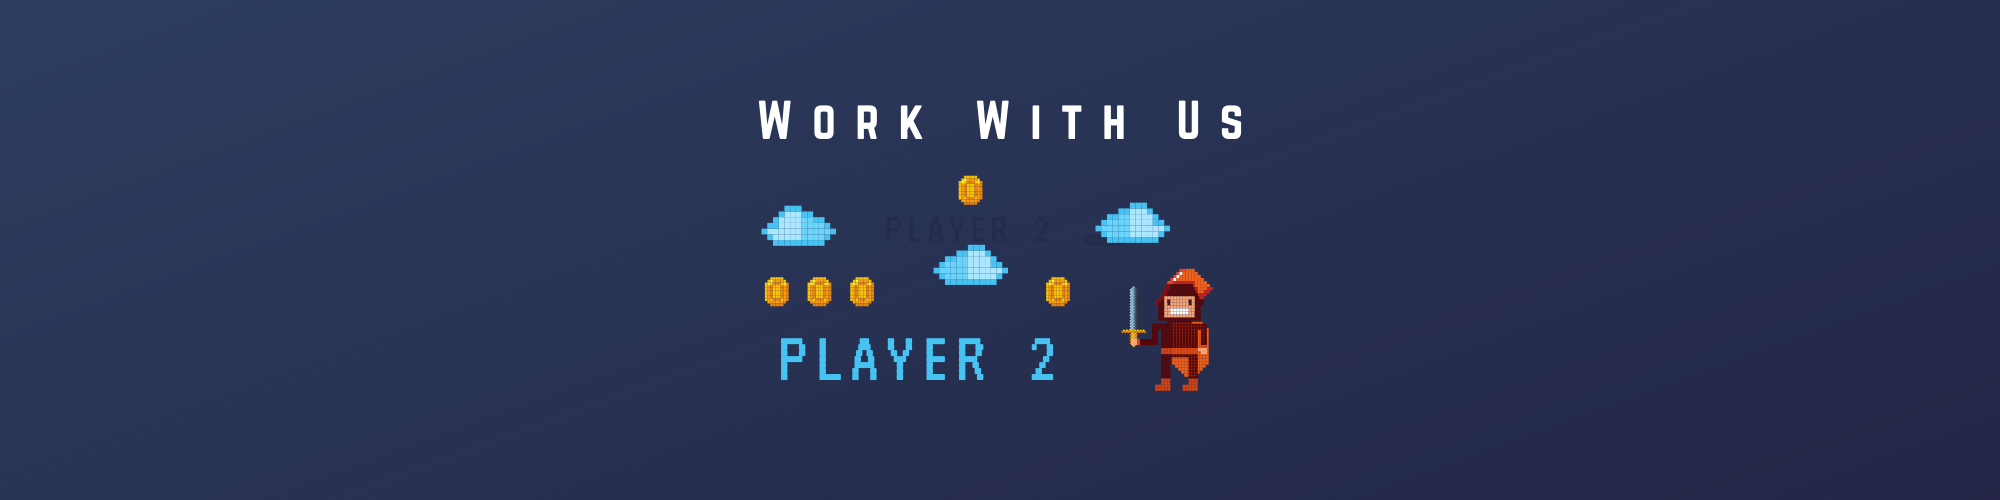 be our player 2